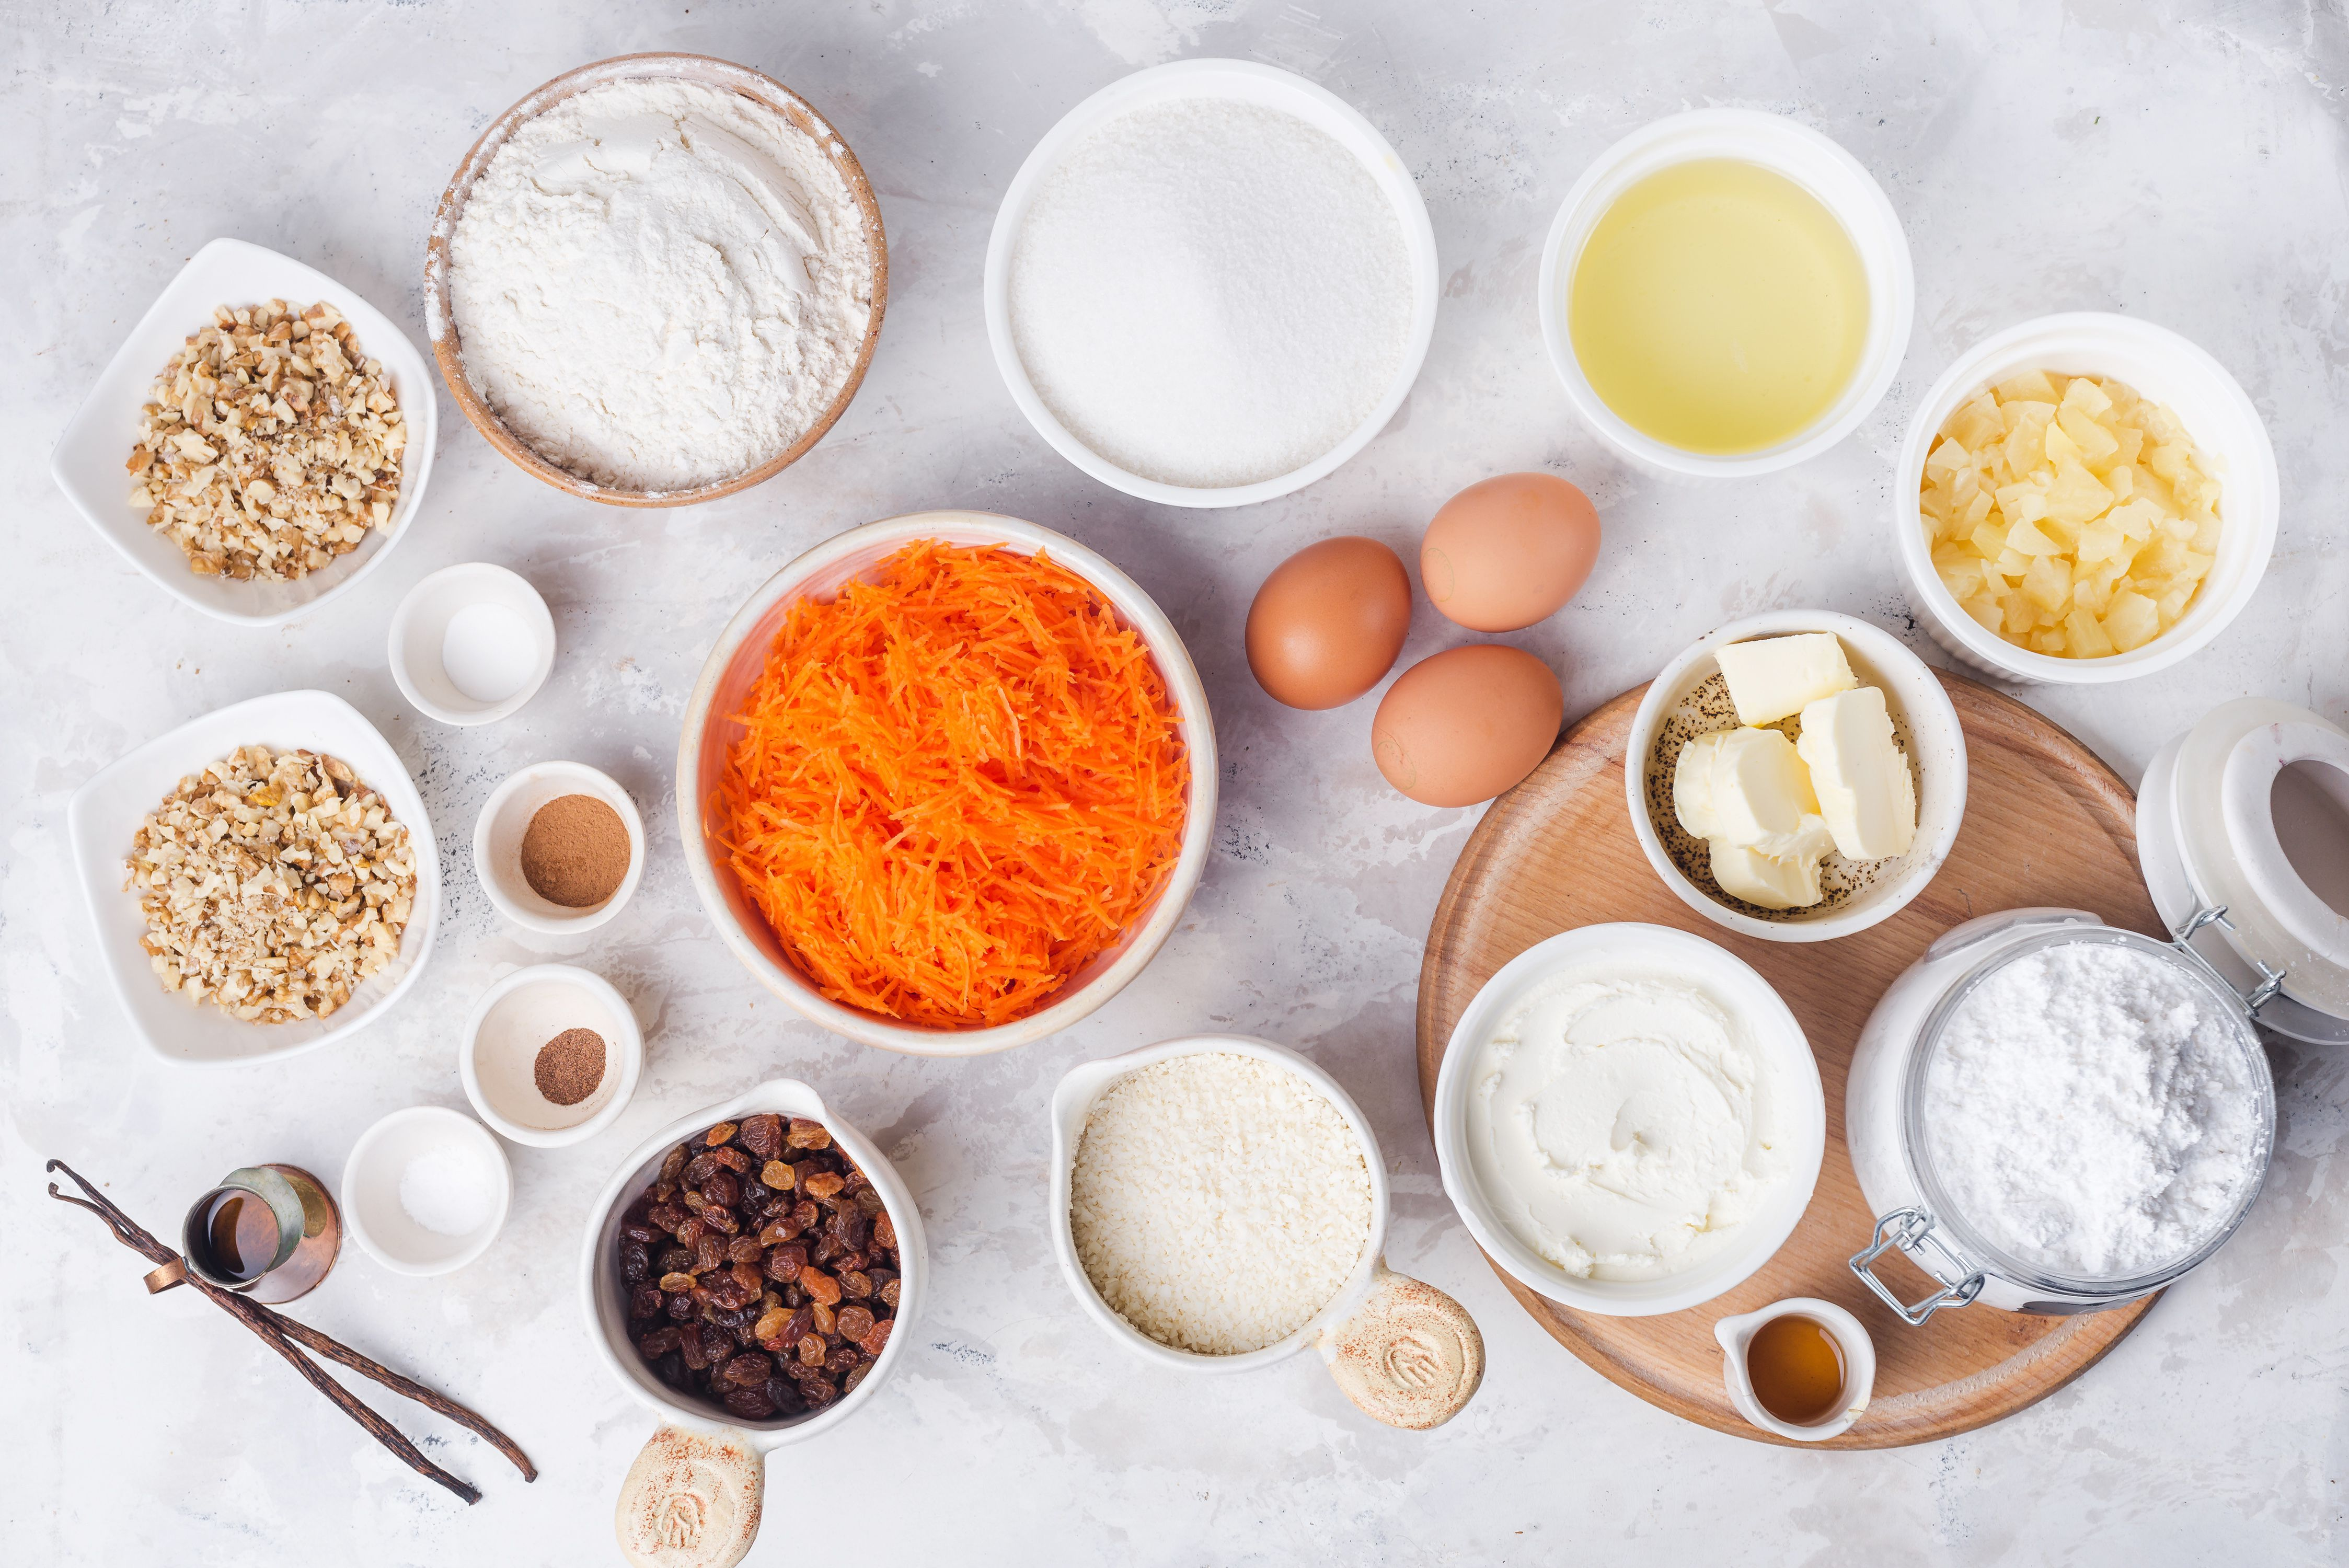 Ingredients for carrot cake with pineapple